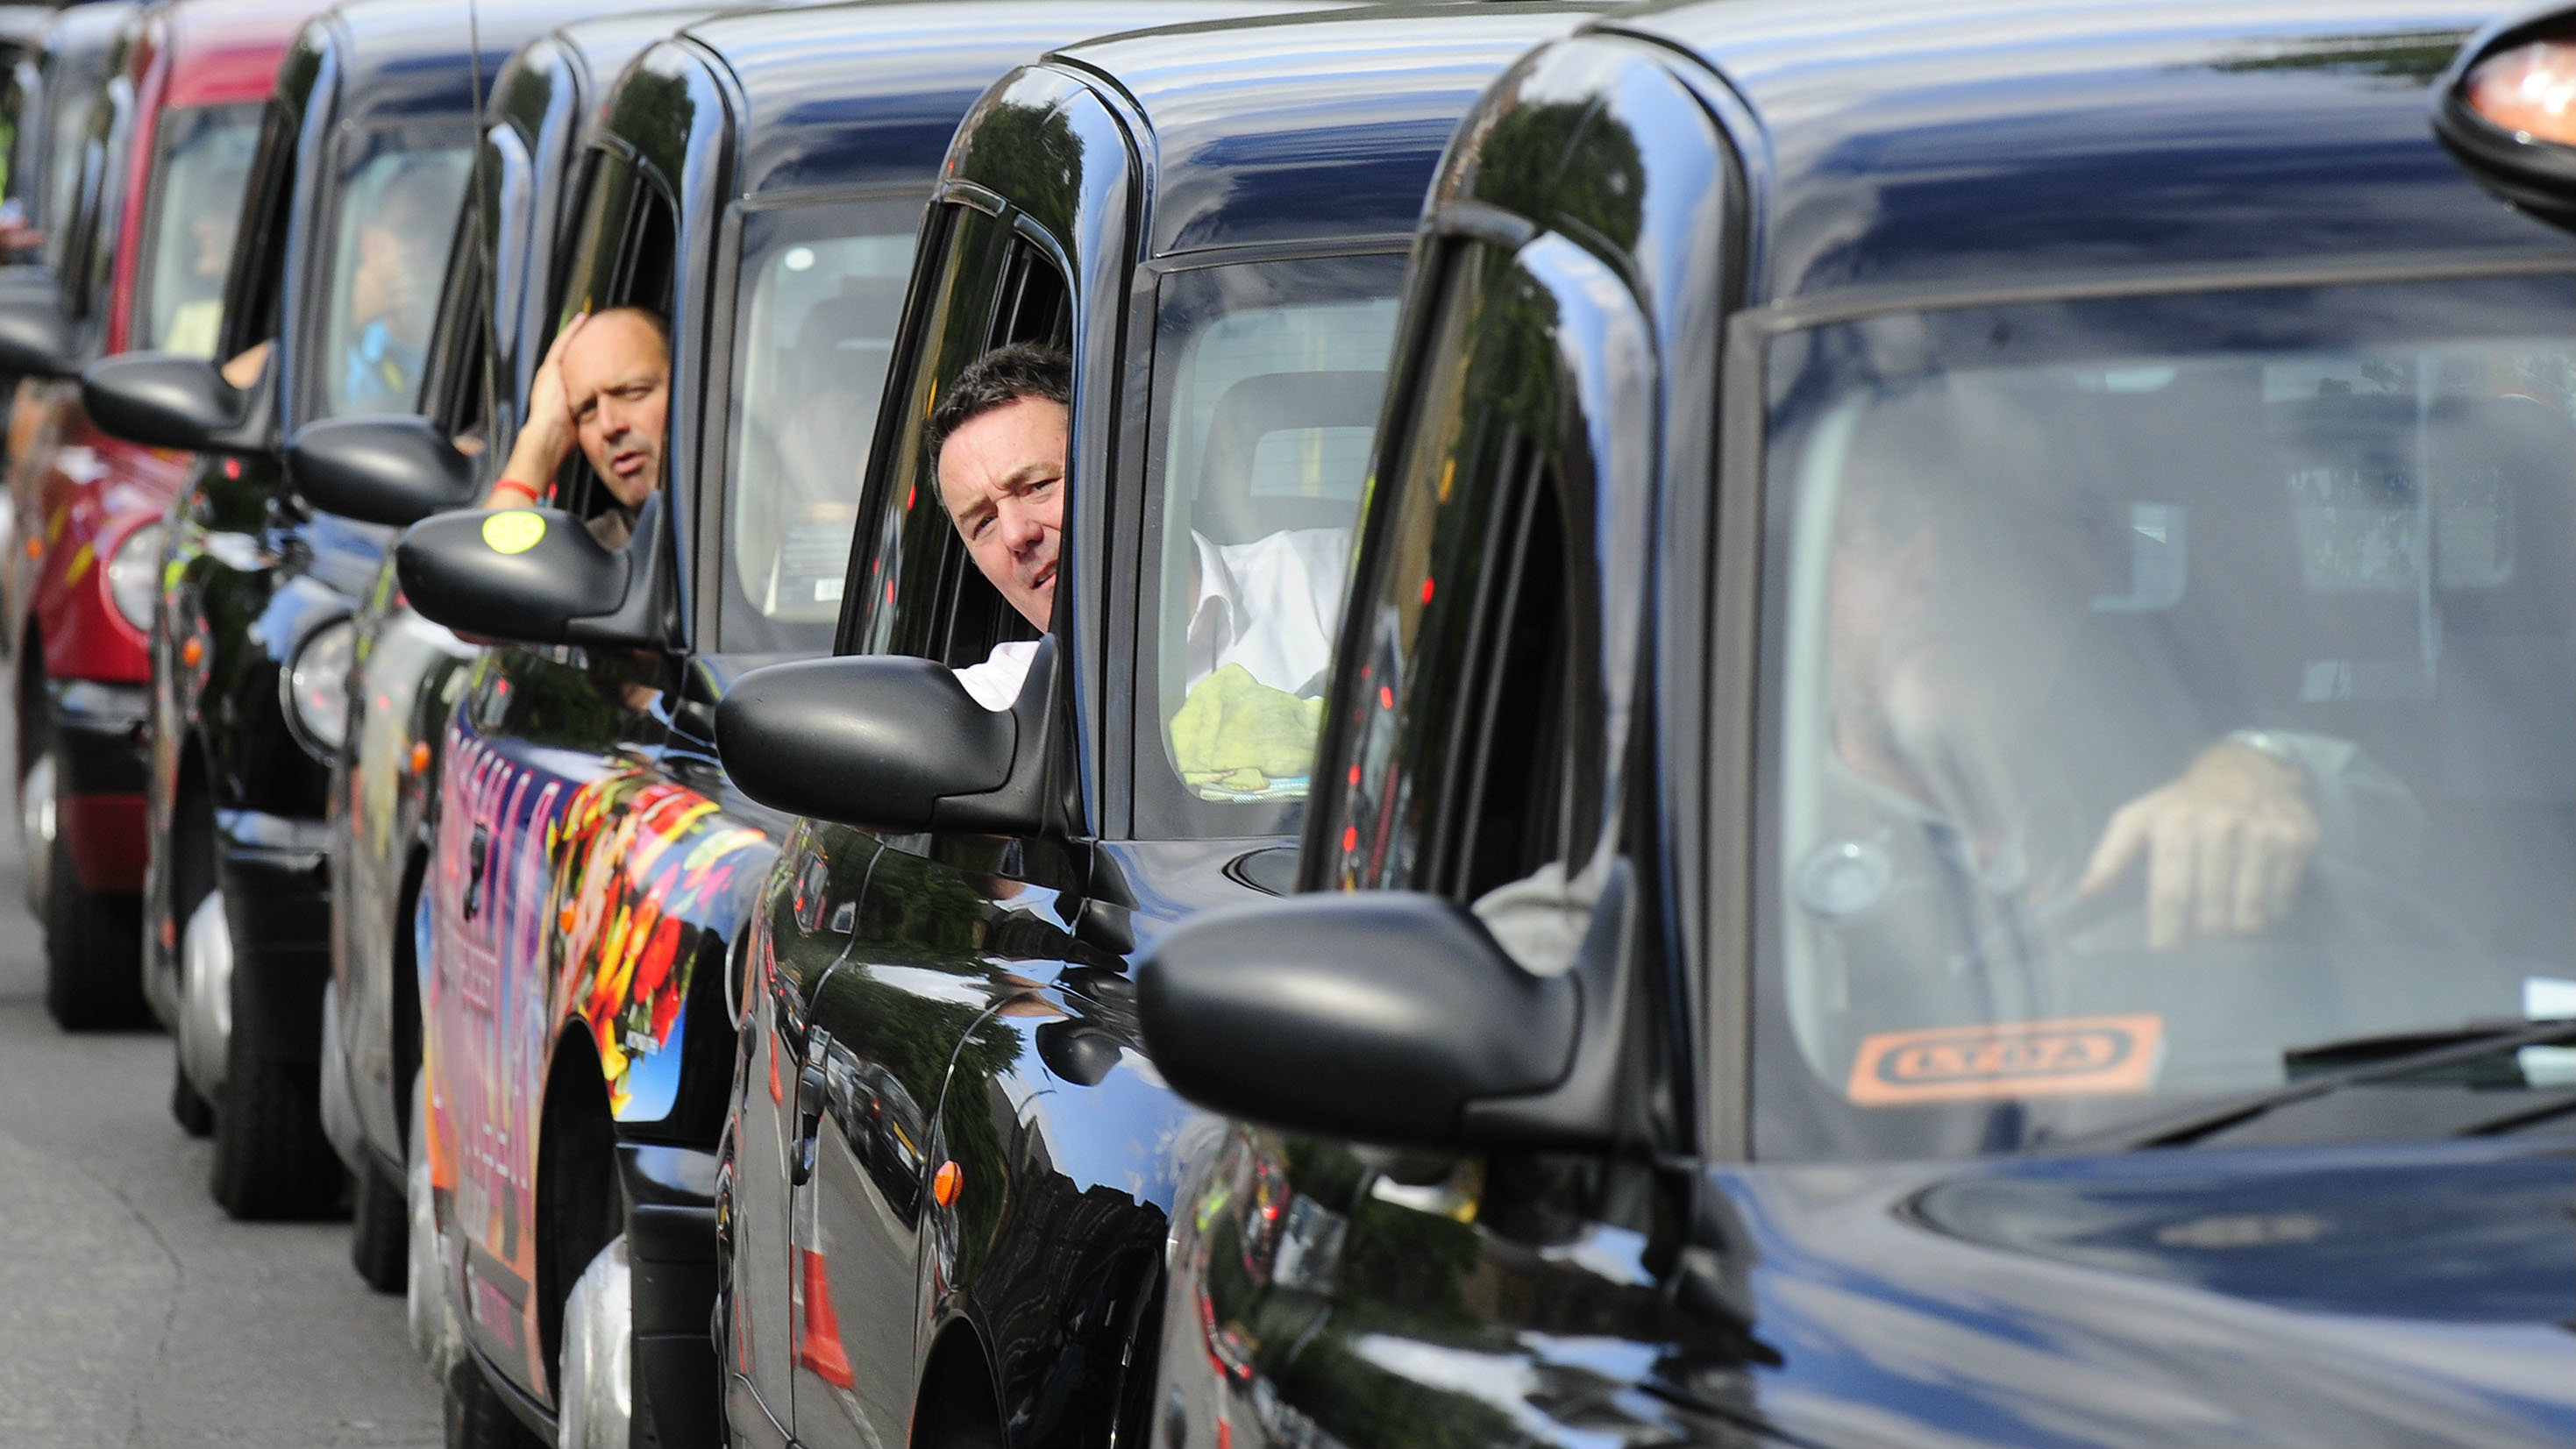 Black cab drivers in London.